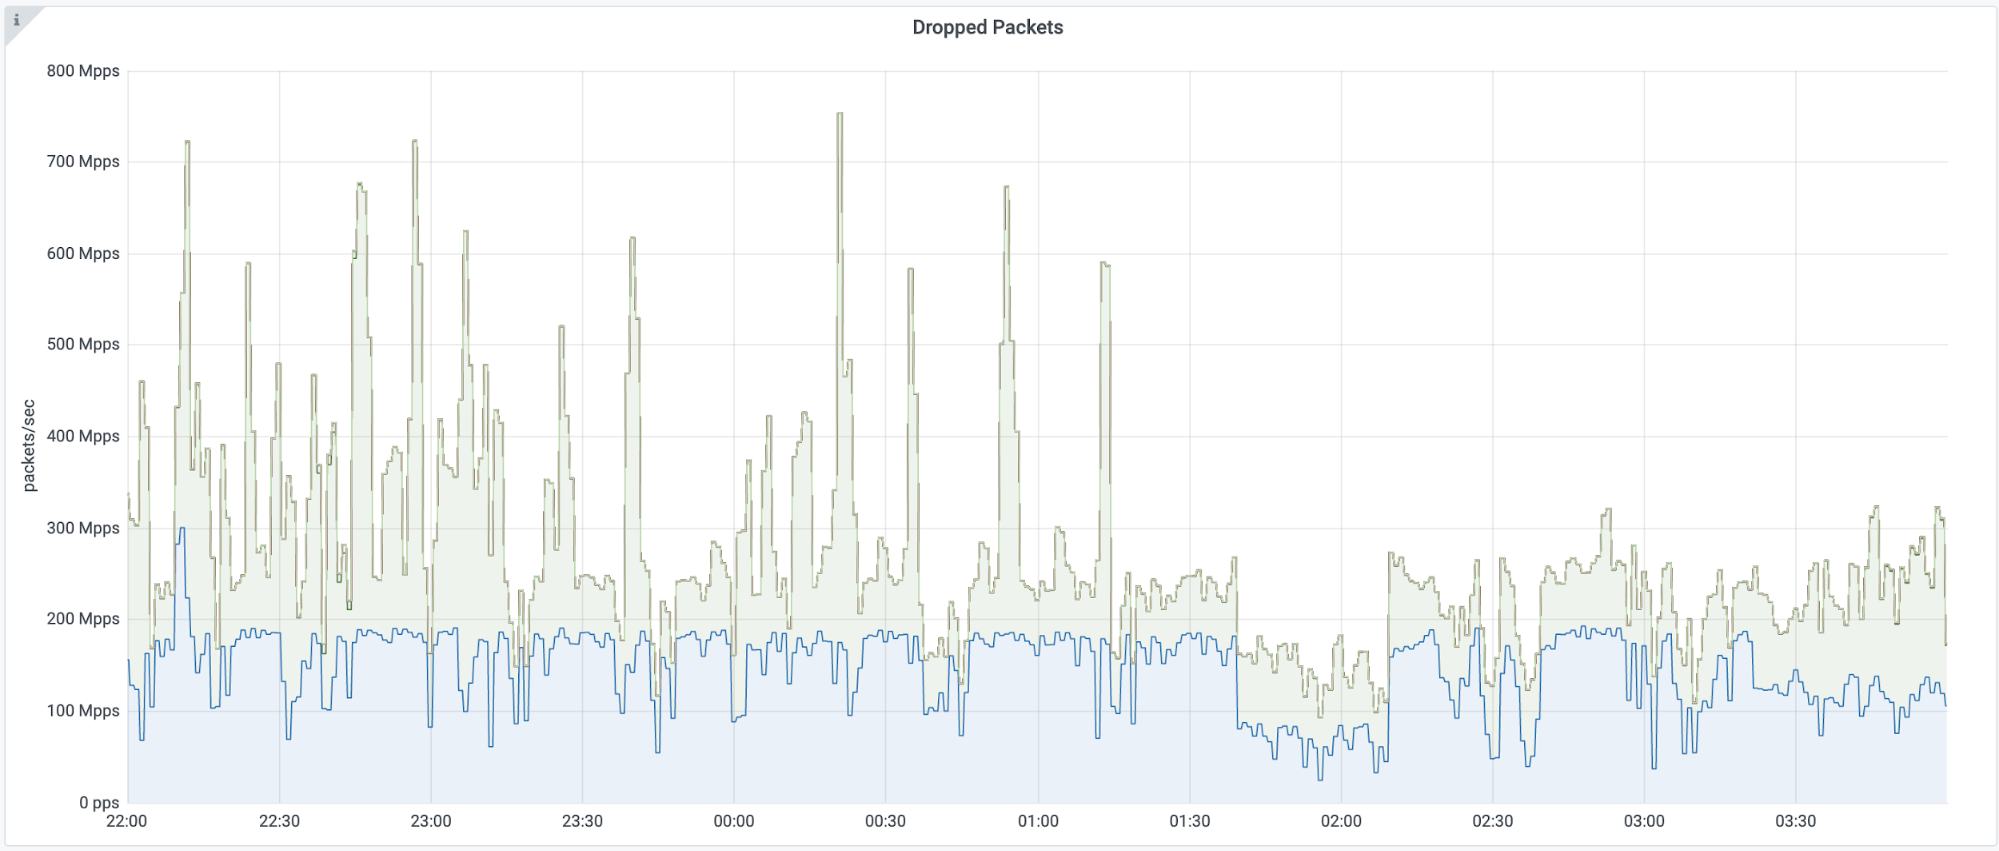 Mitigating a 754 Million PPS DDoS Attack Automatically